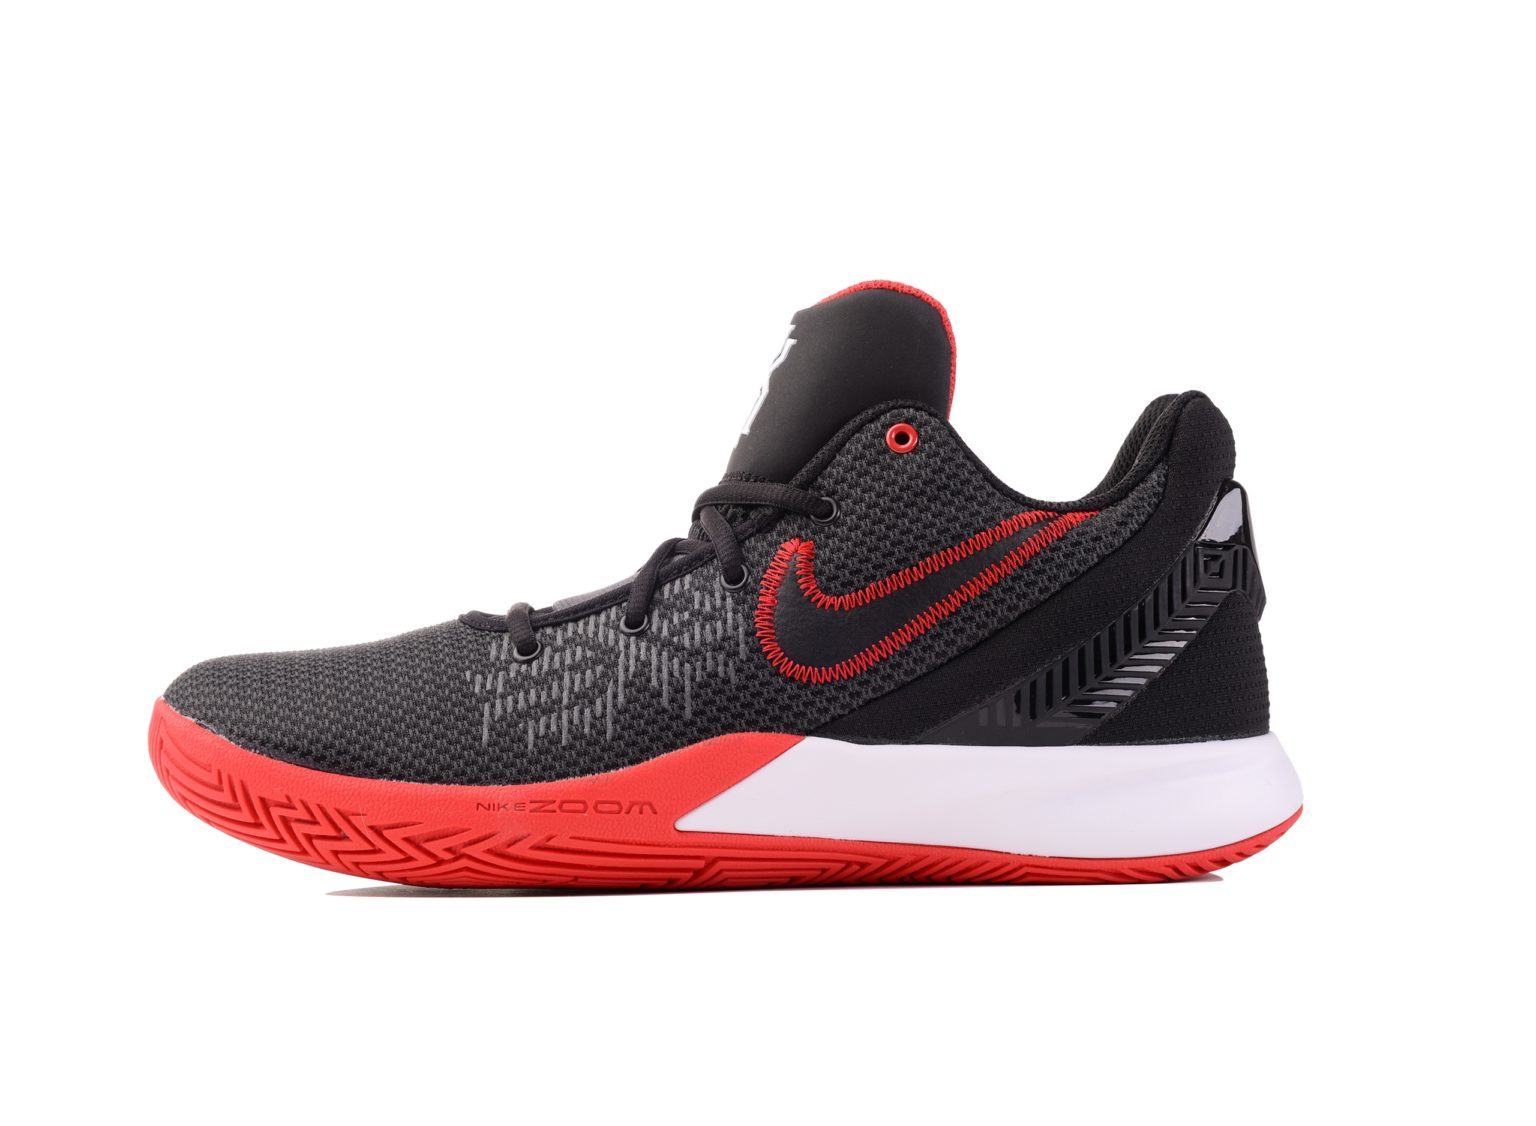 Kyrie Fly Trap 2